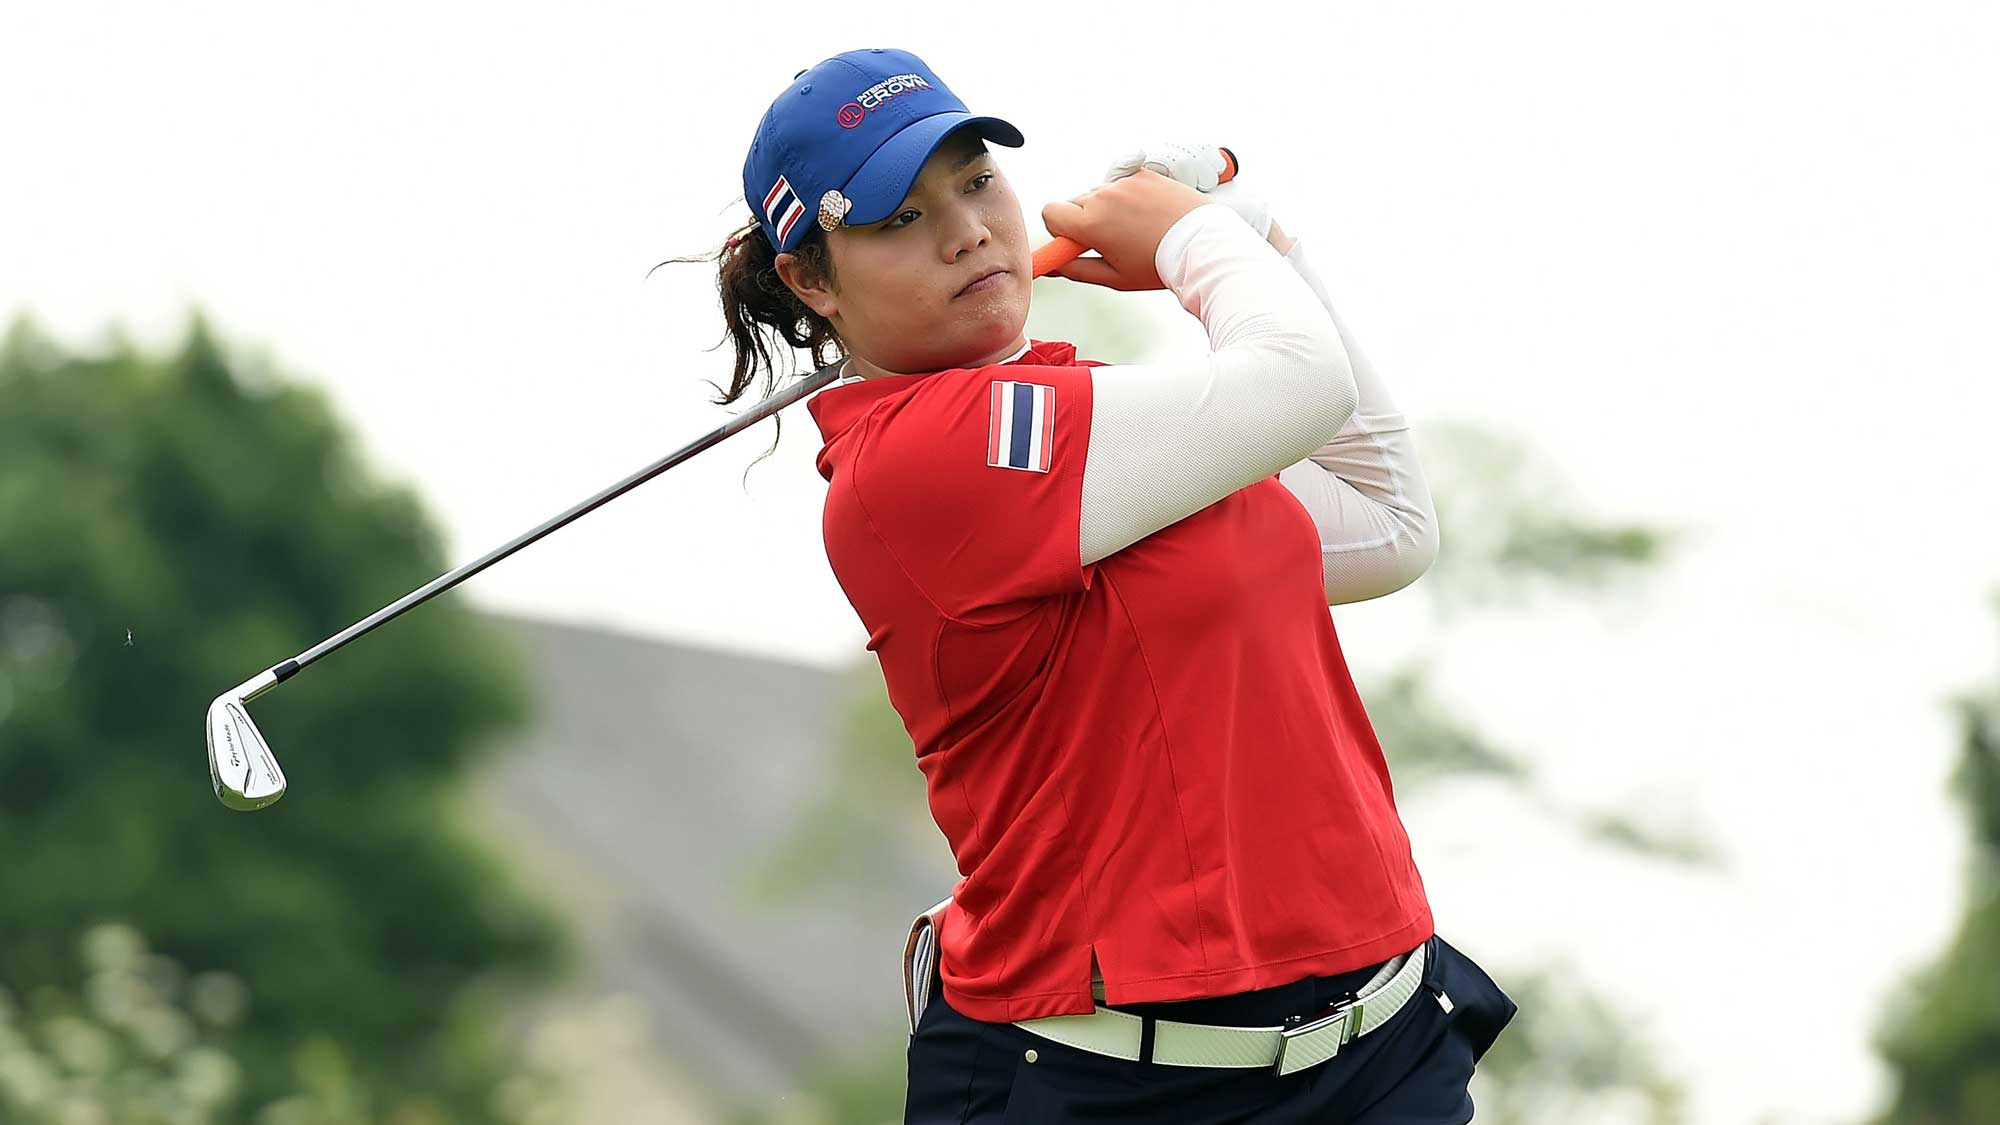 Ariya Jutanugarn of Thailand hits her tee shot on the fourth hole during the four-ball session of the 2016 UL International Crown at the Merit Club